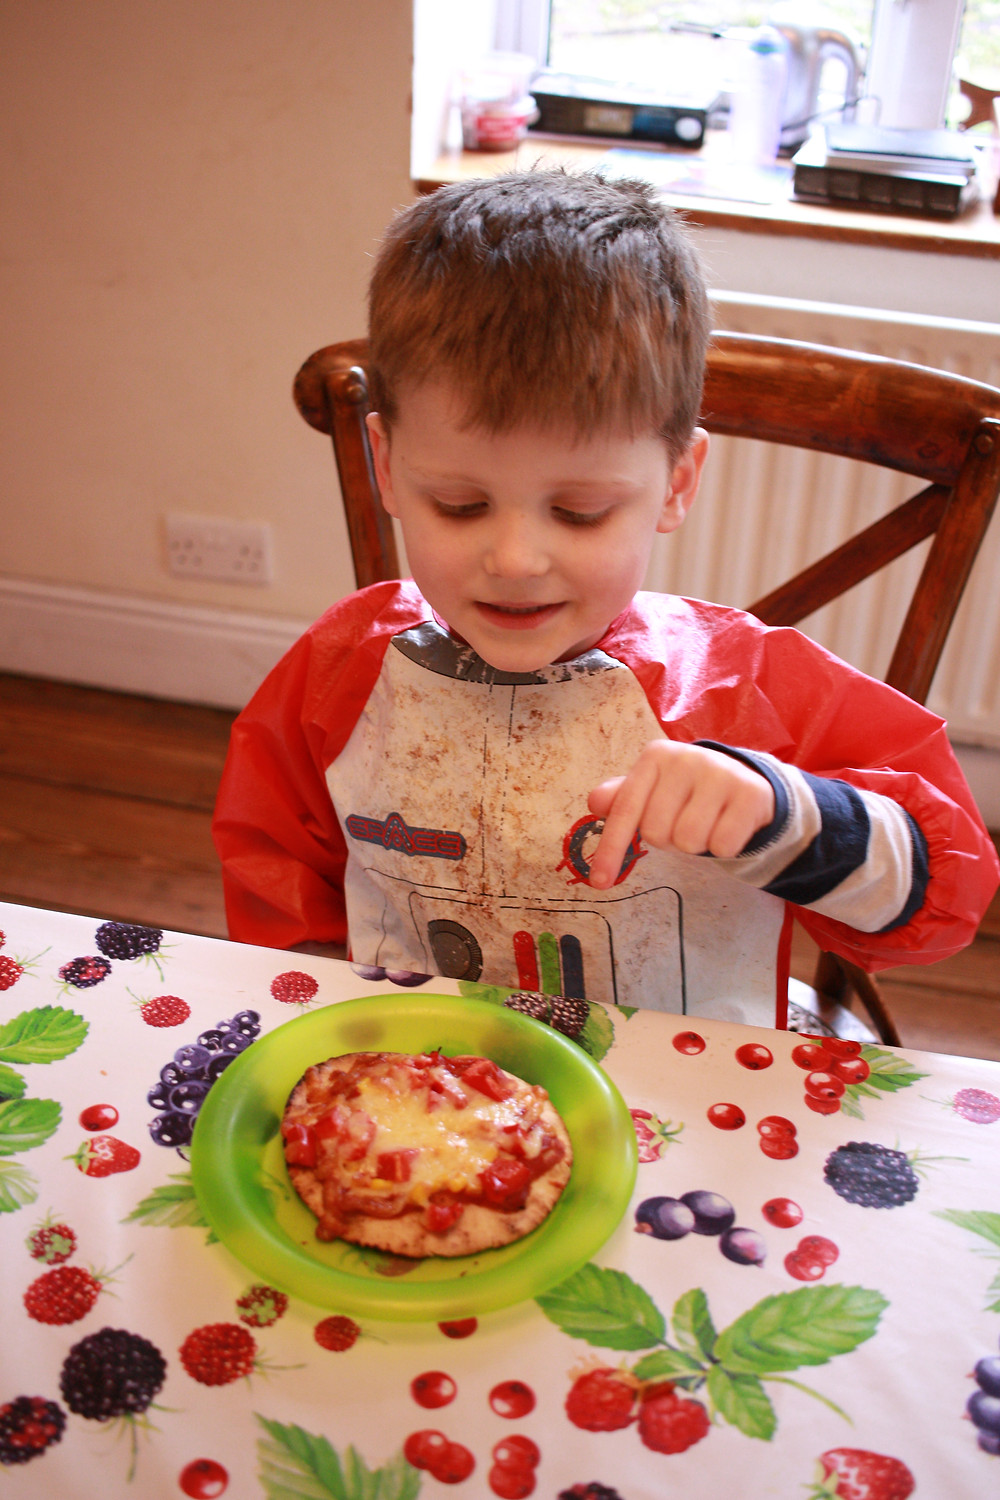 Child with homemade gluten-free pizza